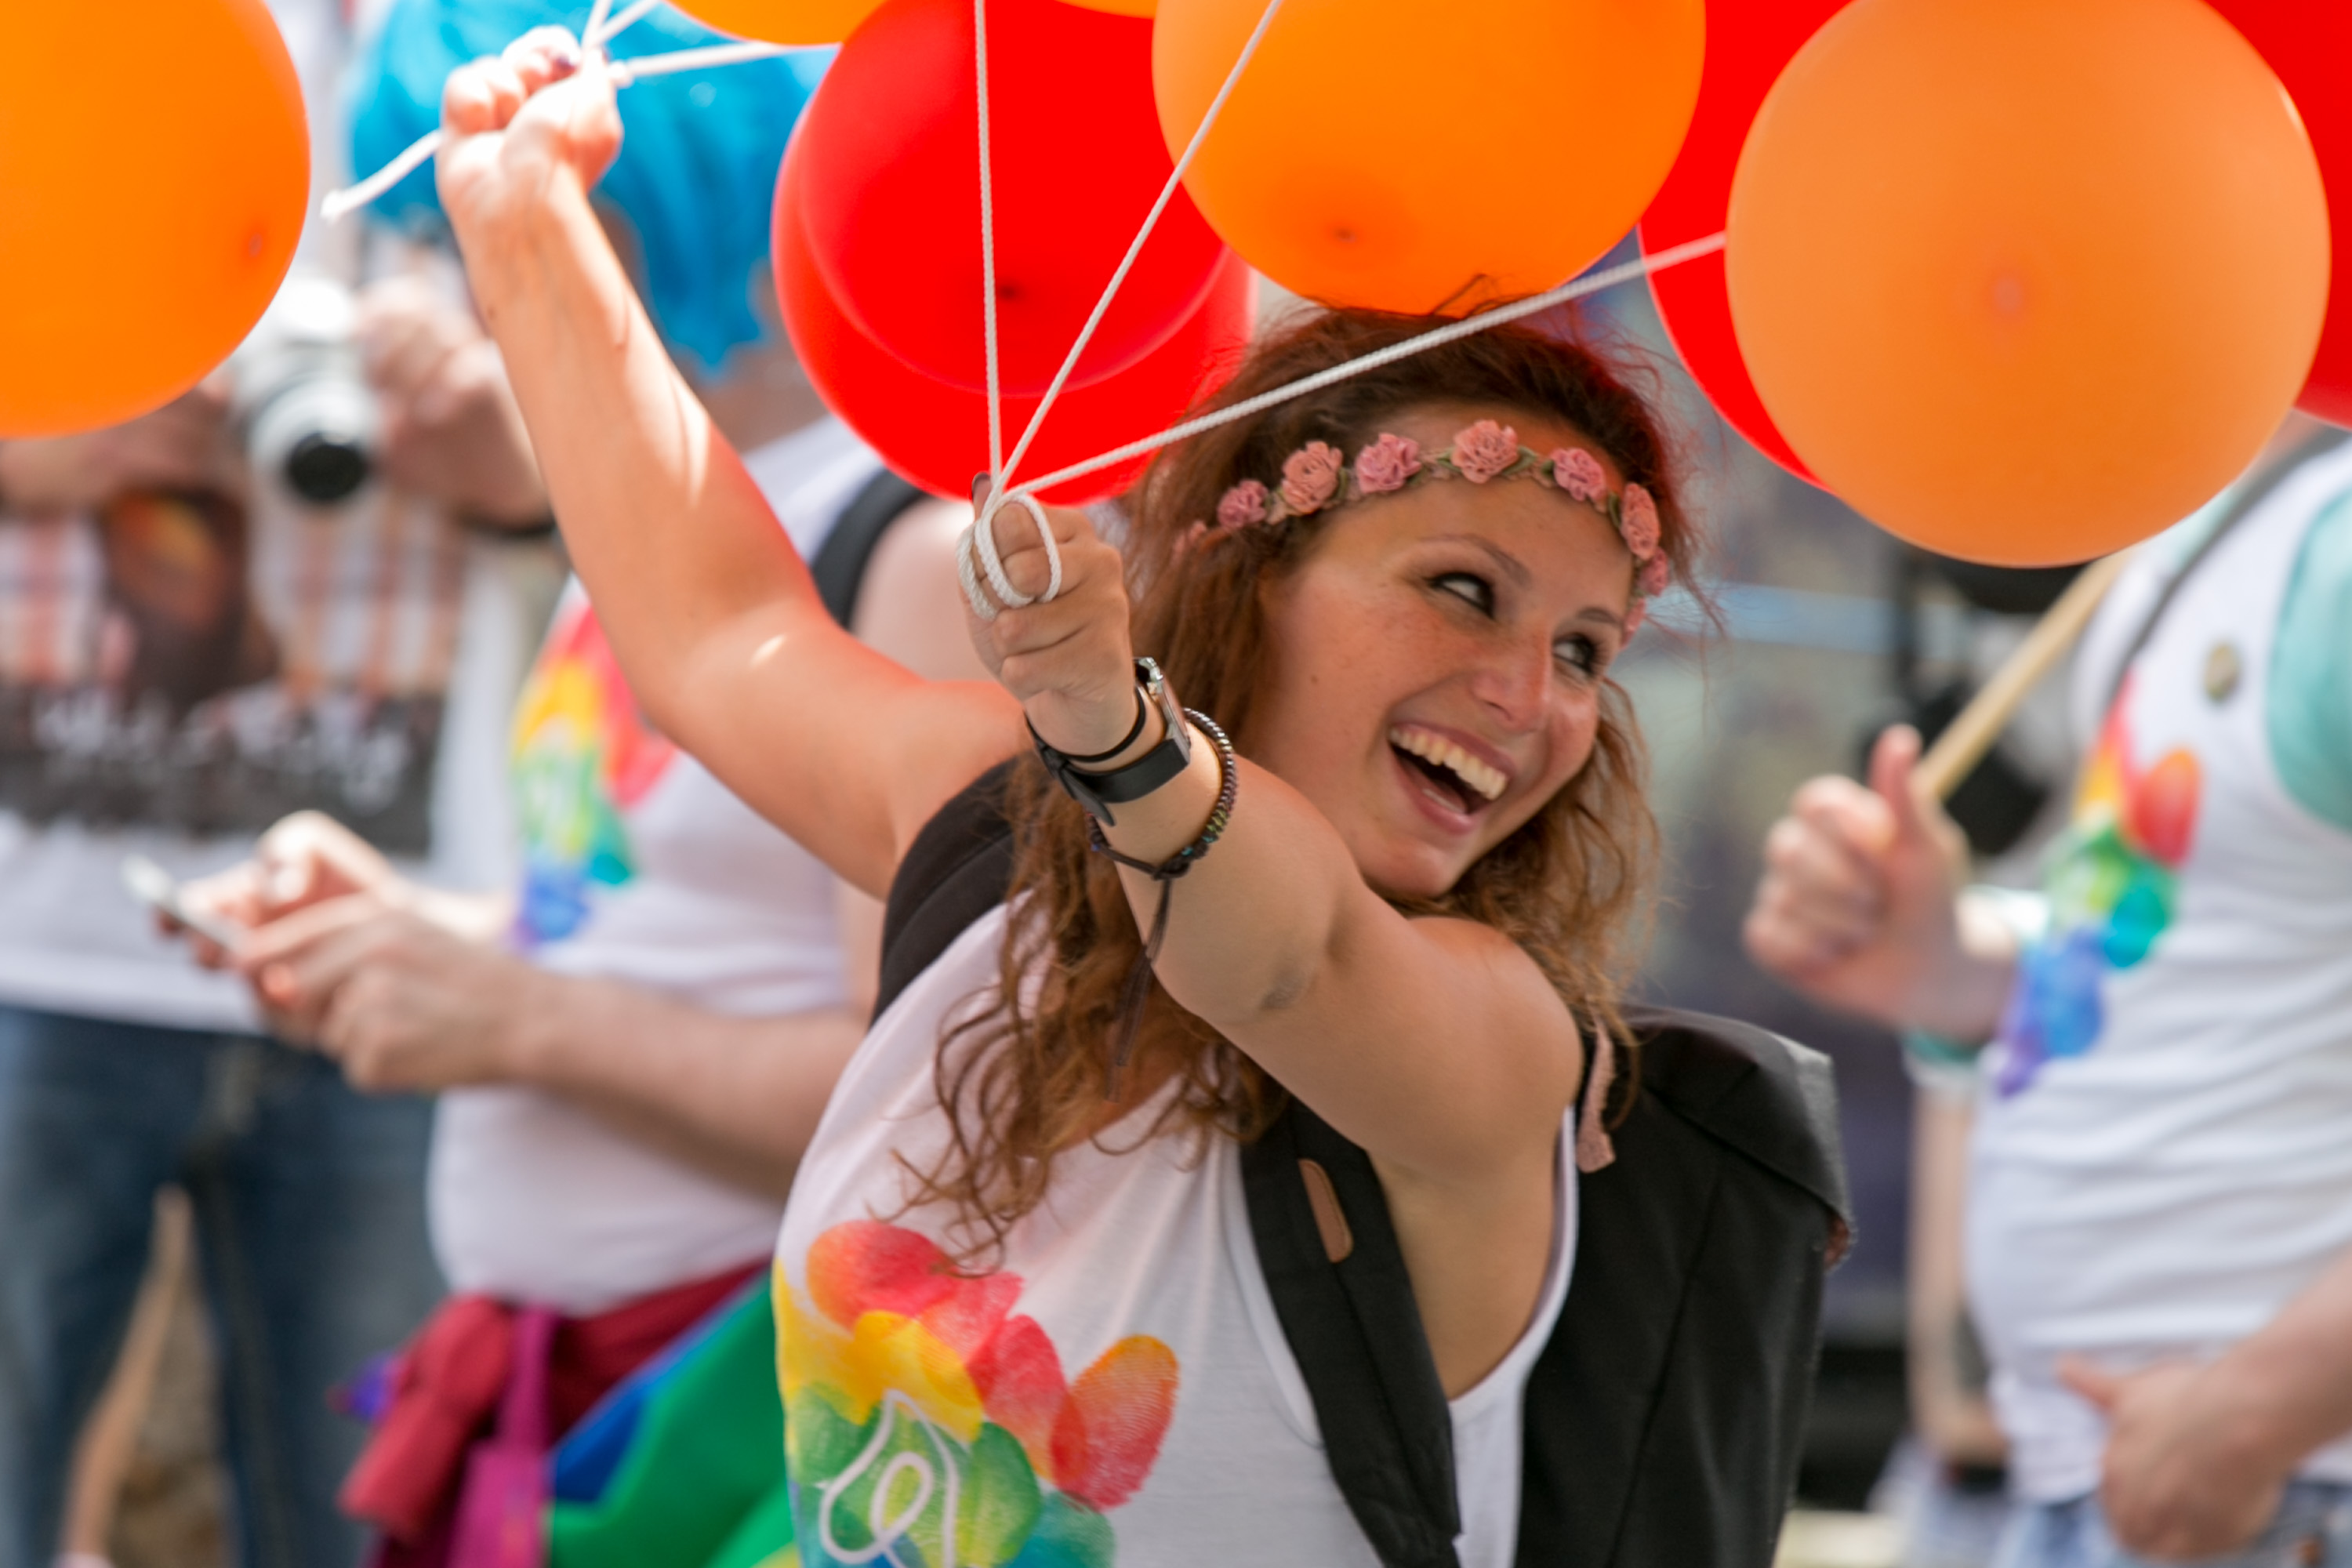 Be an Insider at One of Europe's Largest Pride Events